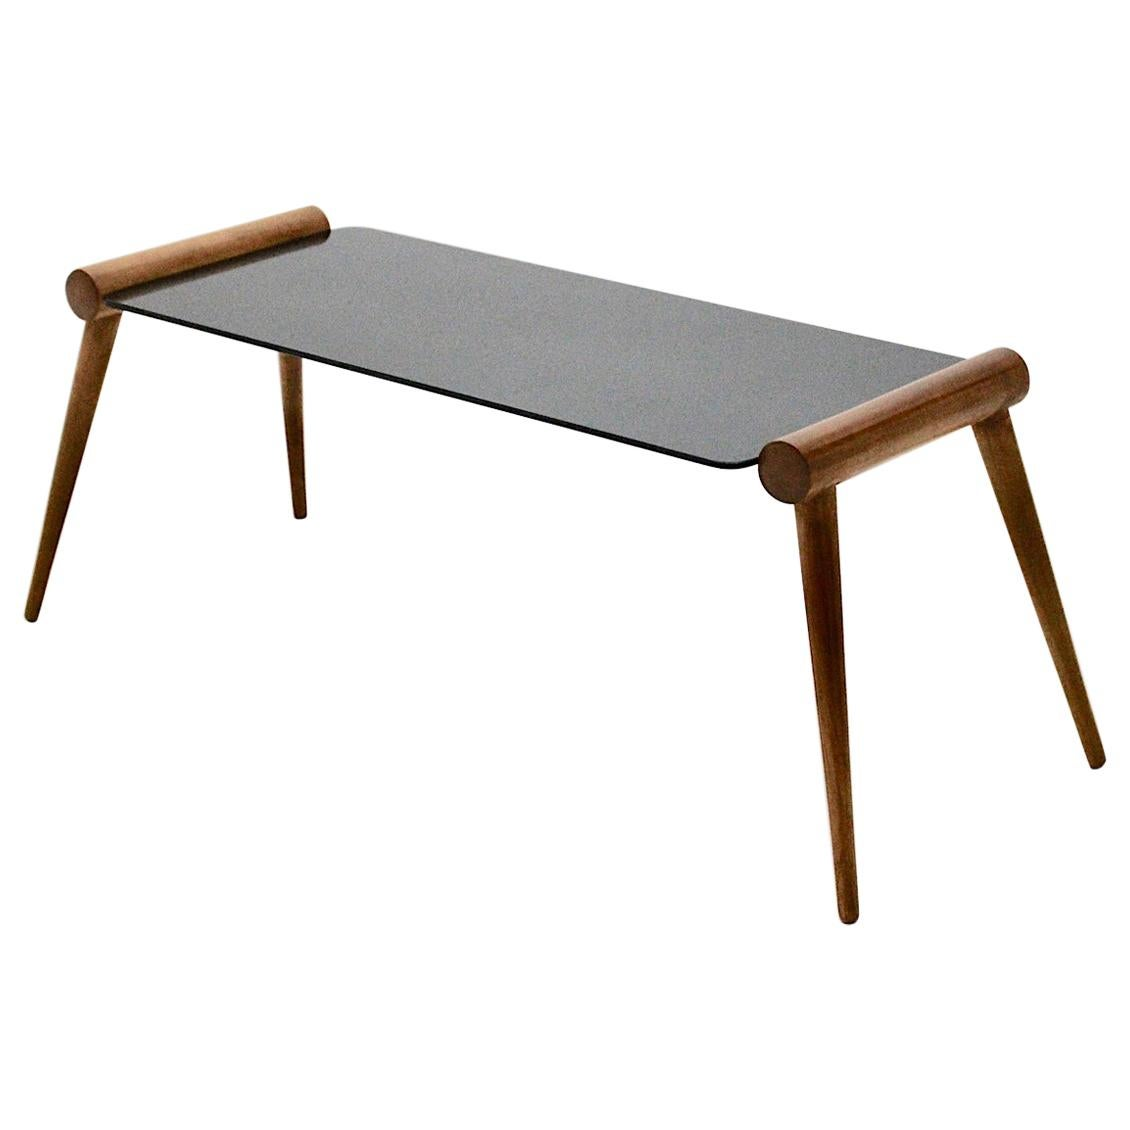 Mid-Century Modern Vintage Maple Tree Coffee Table by Max Kment, Vienna, 1950s